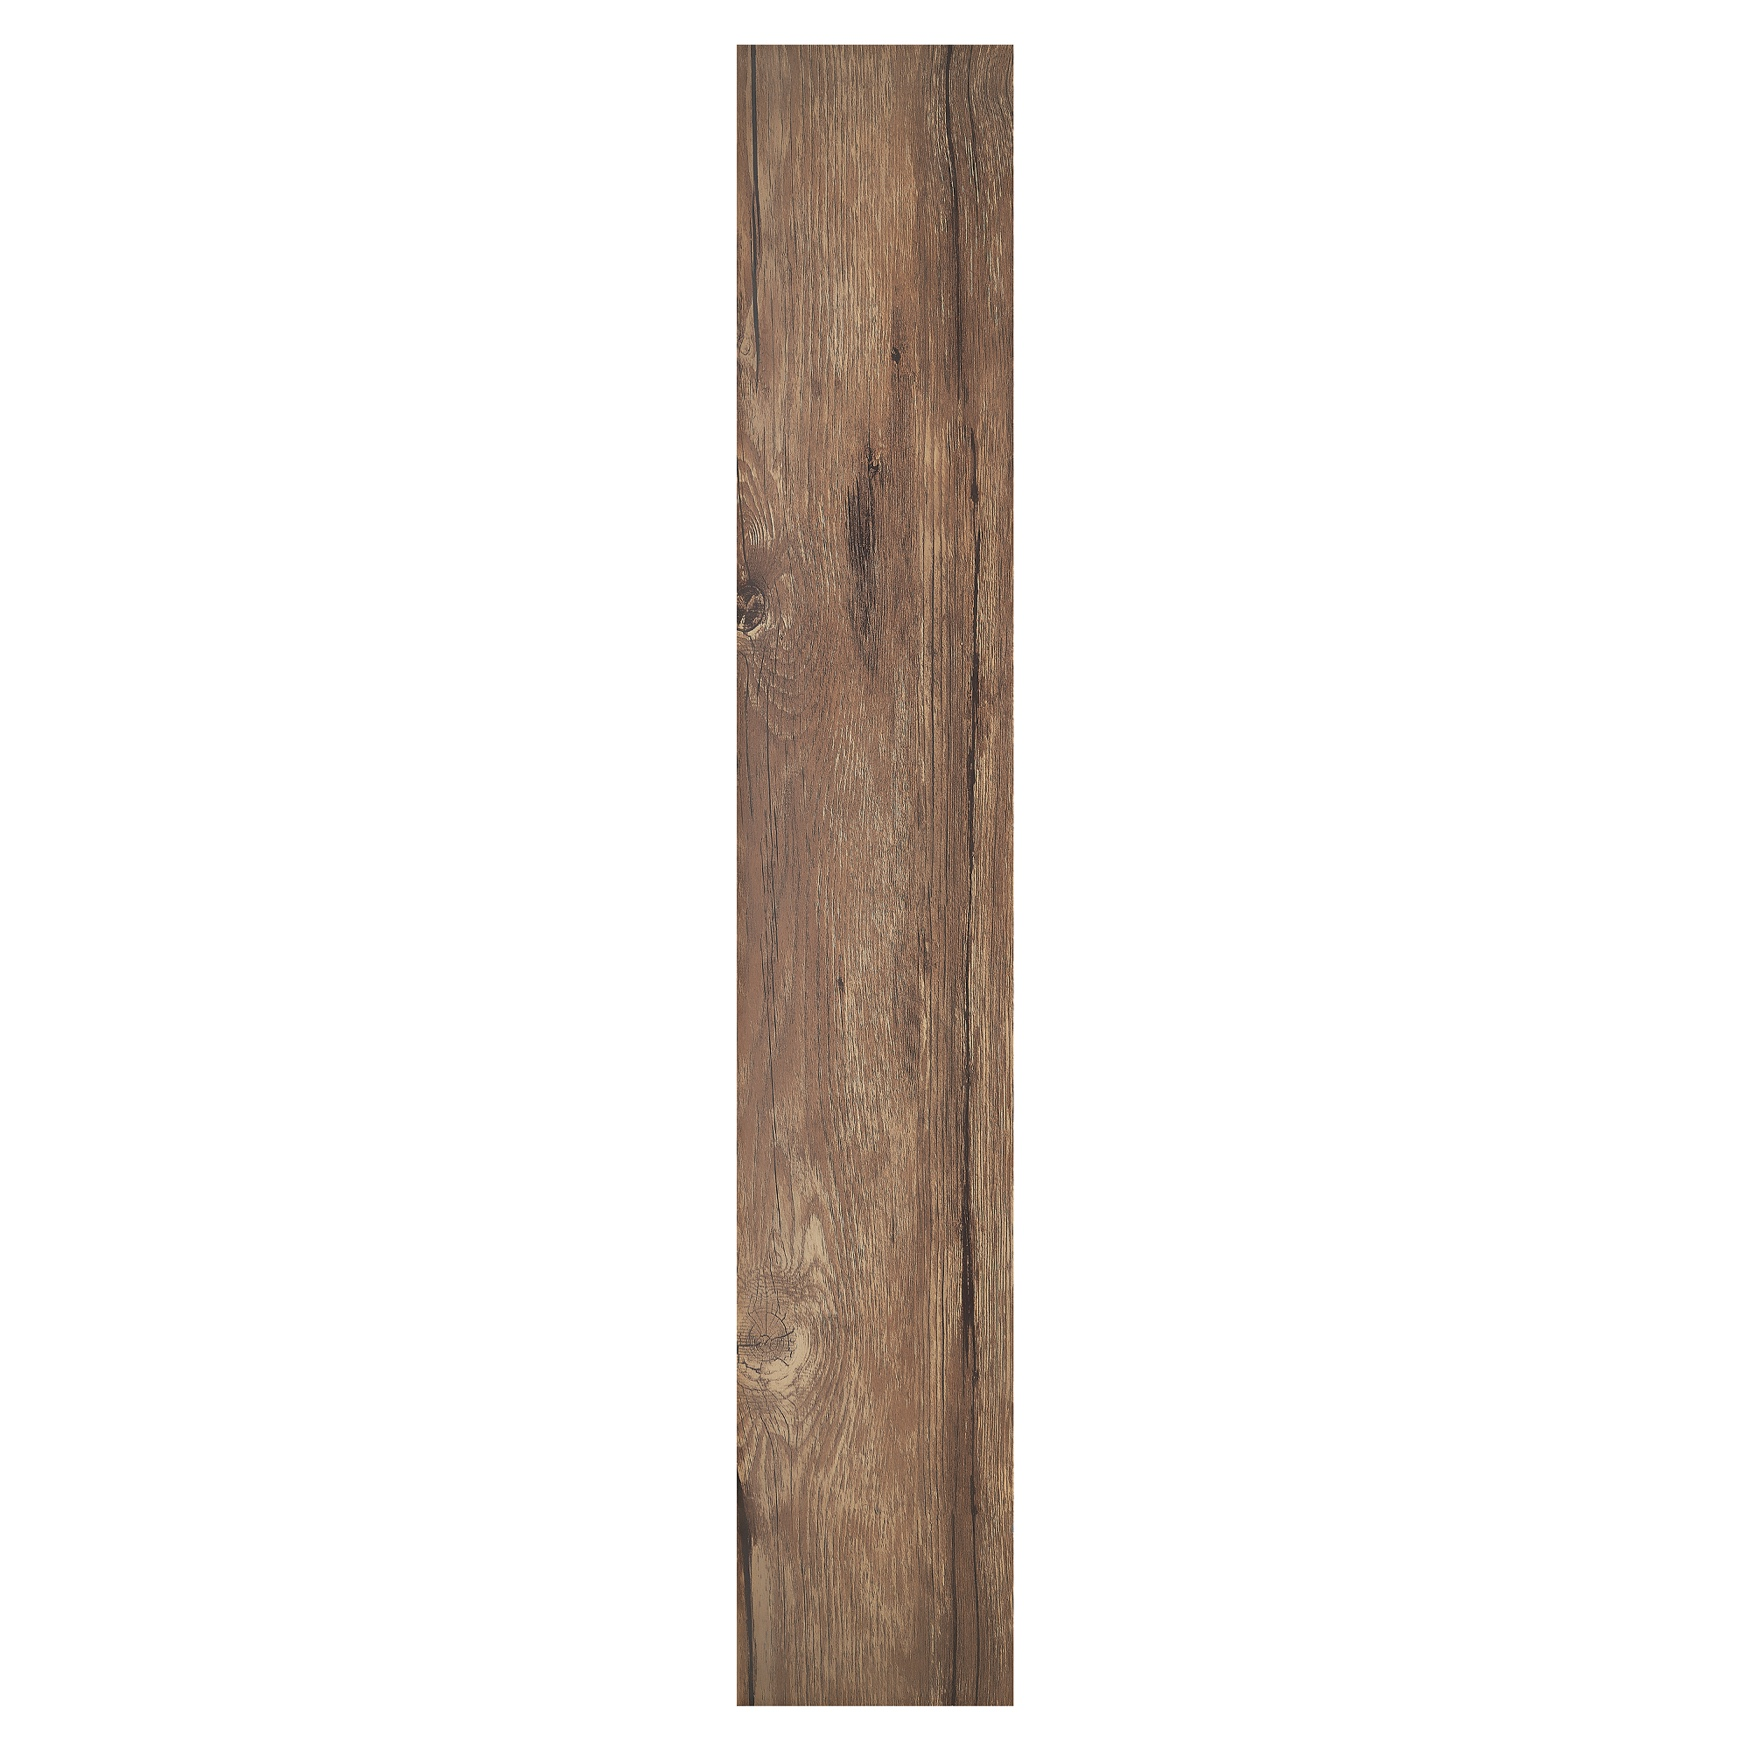 Sterling Walnut 6x36 1.2mm Self Adhesive Vinyl Floor Planks - 10 Planks/15 sq. ft.,